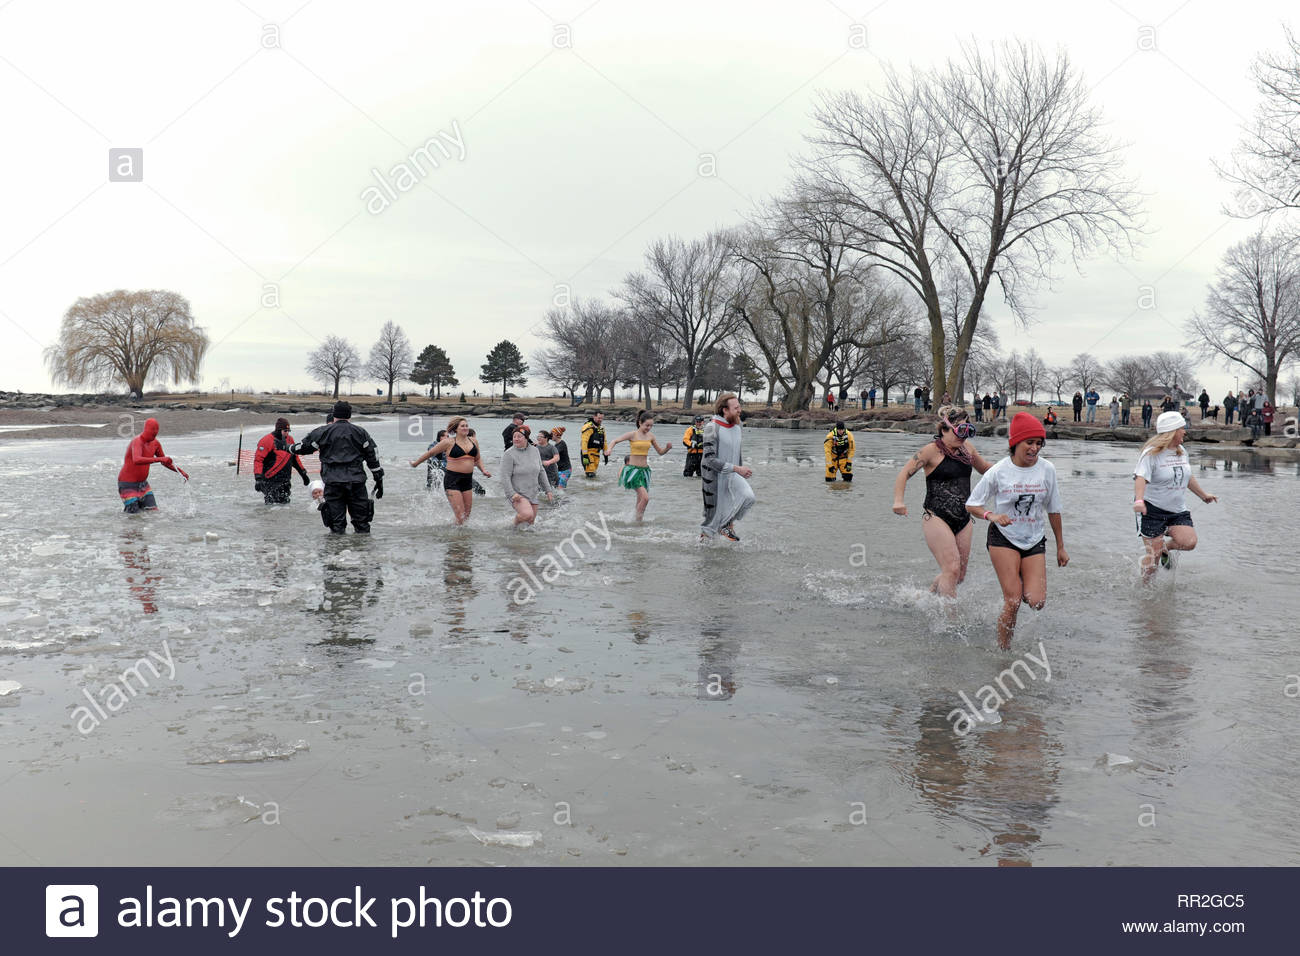 Cleveland, Ohio, USA.  24th Feb, 2019.  Participants in the 2019 Cleveland Polar Plunge brave the ice-filled waters of the Lake Erie shoreline in Edgewater Park, Cleveland, Ohio.  Over 400 participants took a dip in the freezing waters raising funds for the Special Olympics.  Credit: Mark Kanning/Alamy Live News. - Stock Image